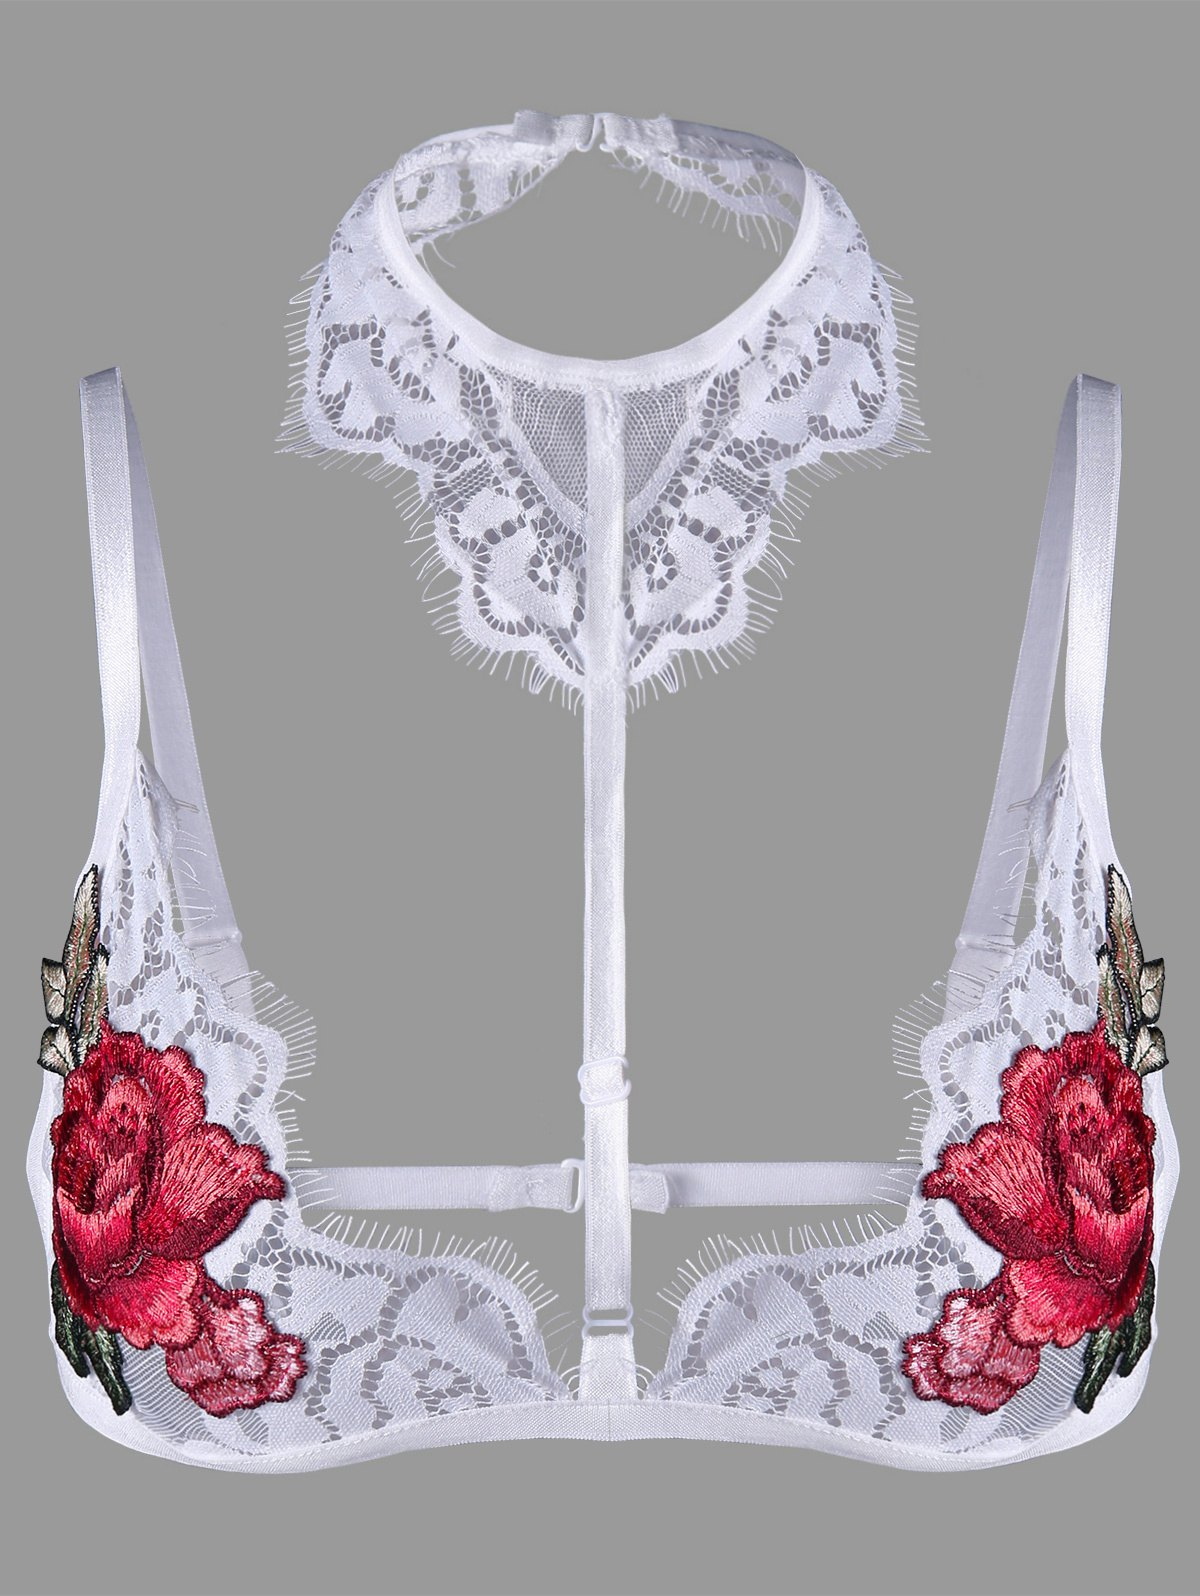 Lace Flower Embroidered Choker Bralette my apartment